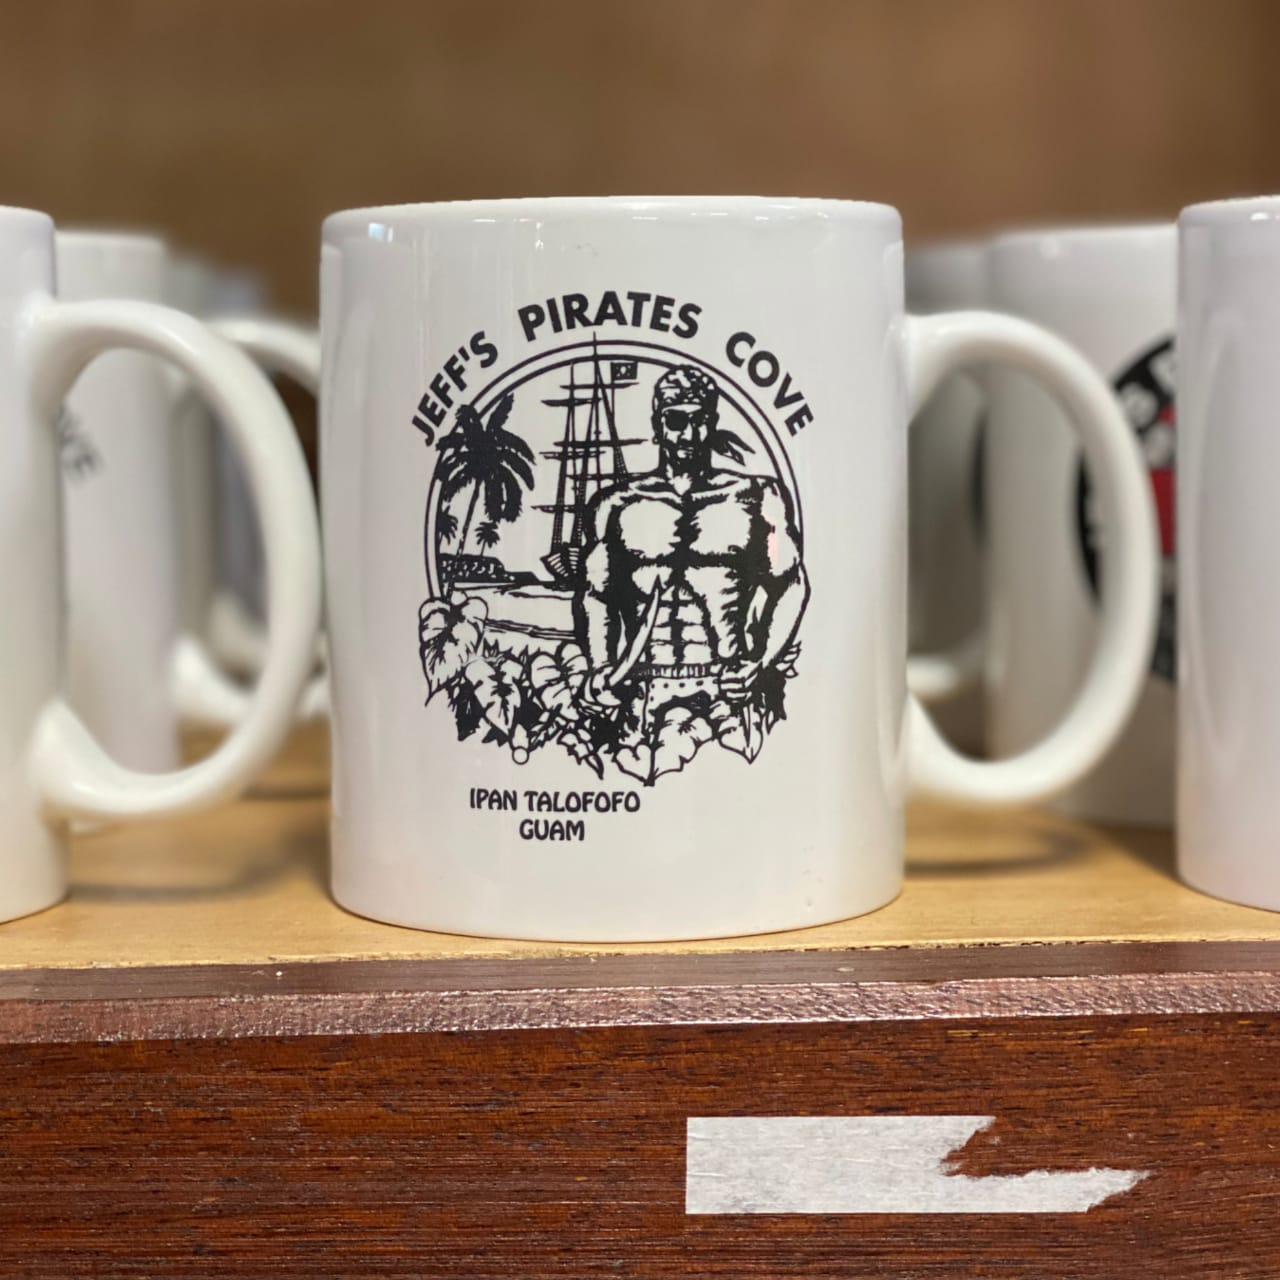 Original Pirate Coffee Mug | Jeffs Pirates Cove Chest